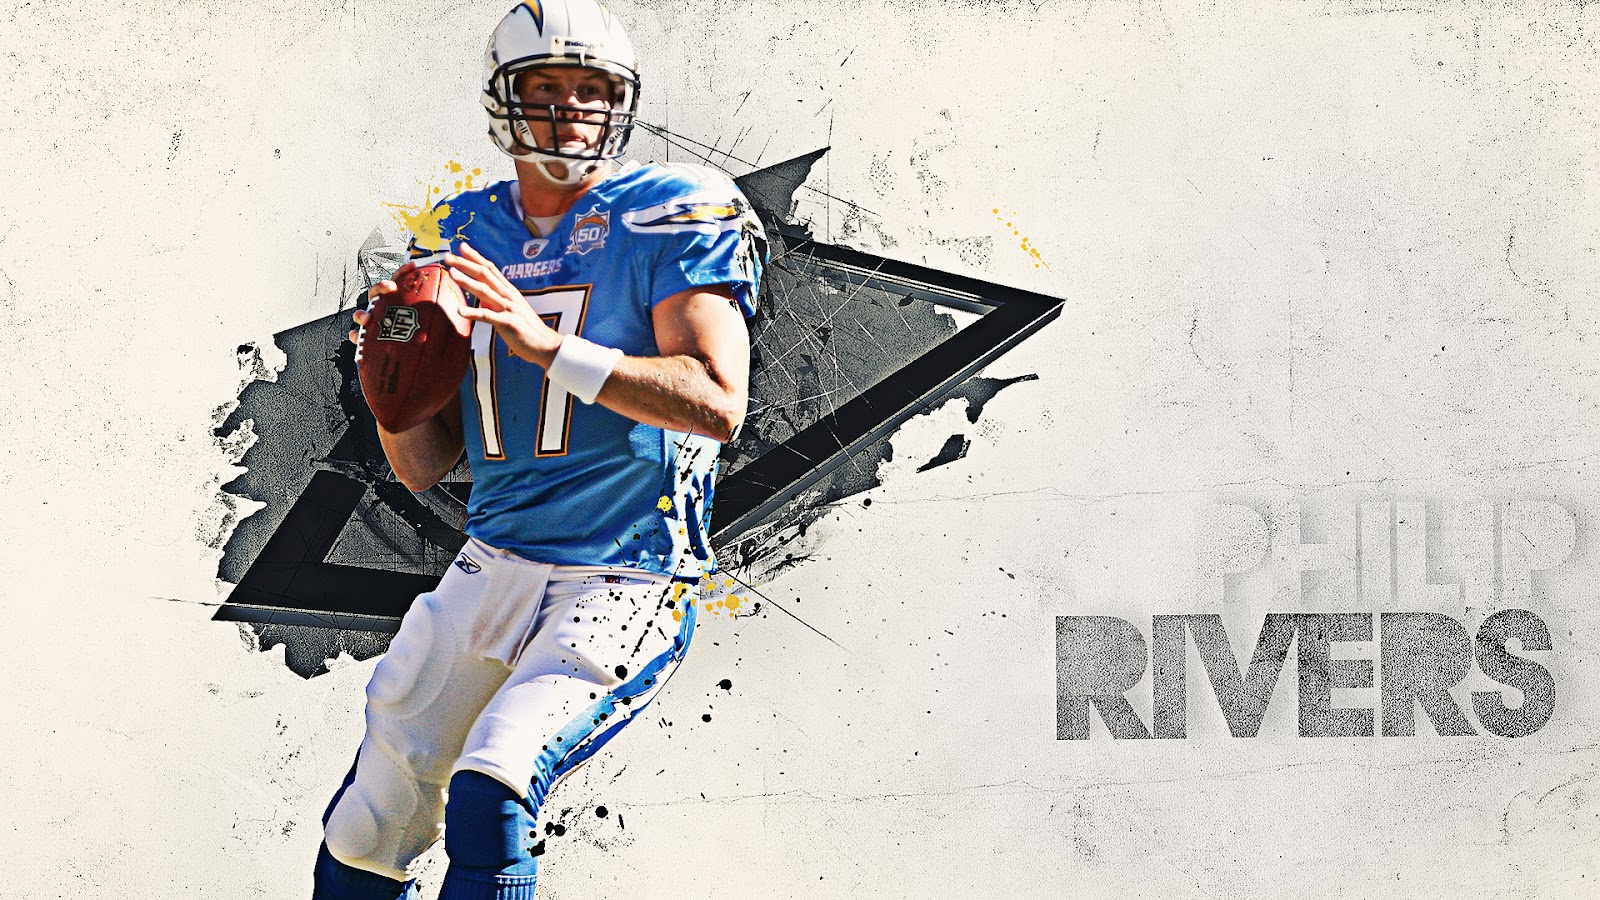 Hd Quality Nfl Wallpaper Philip Rivers San Diego Chargers